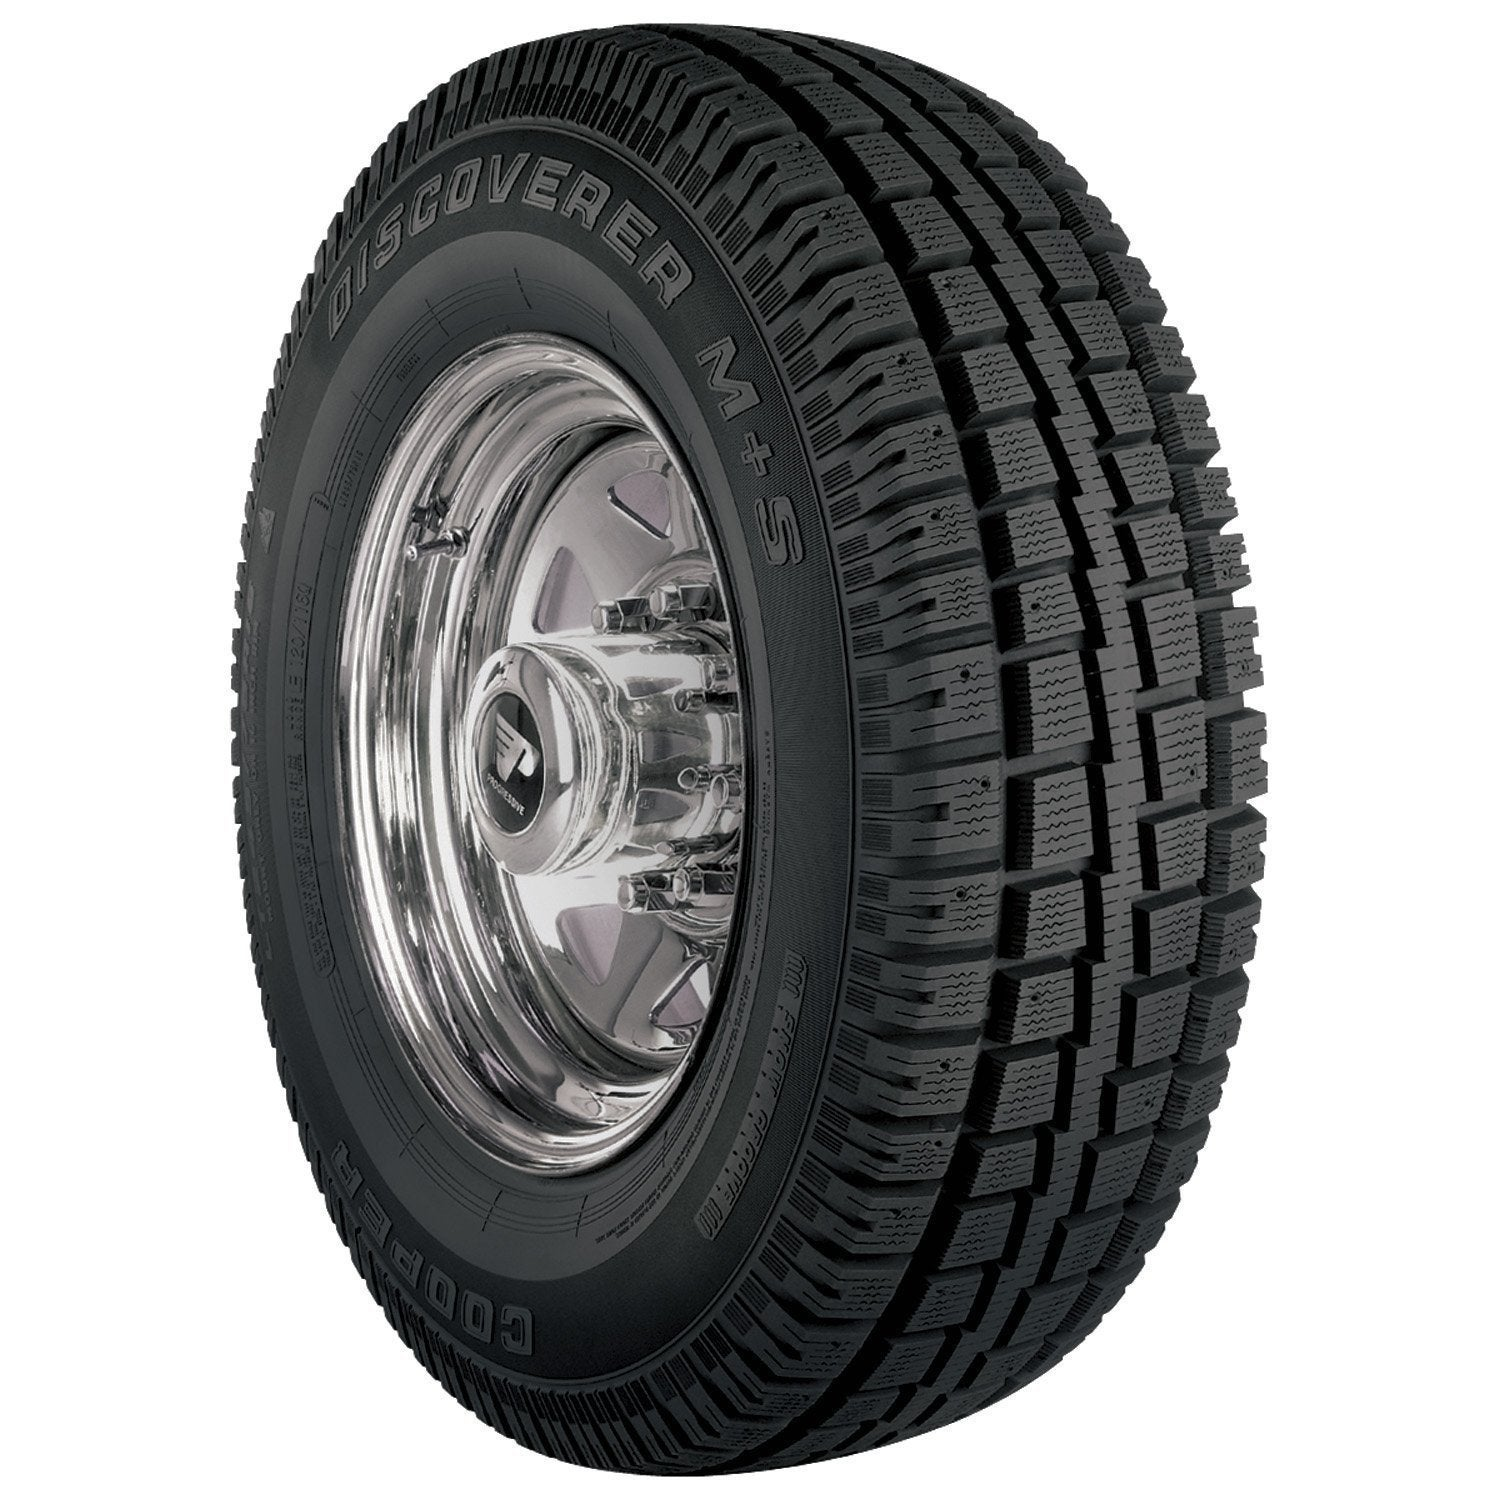 COOPER Discoverer M+S Winter Tire - LT235/75R15 LRC/6 ply...